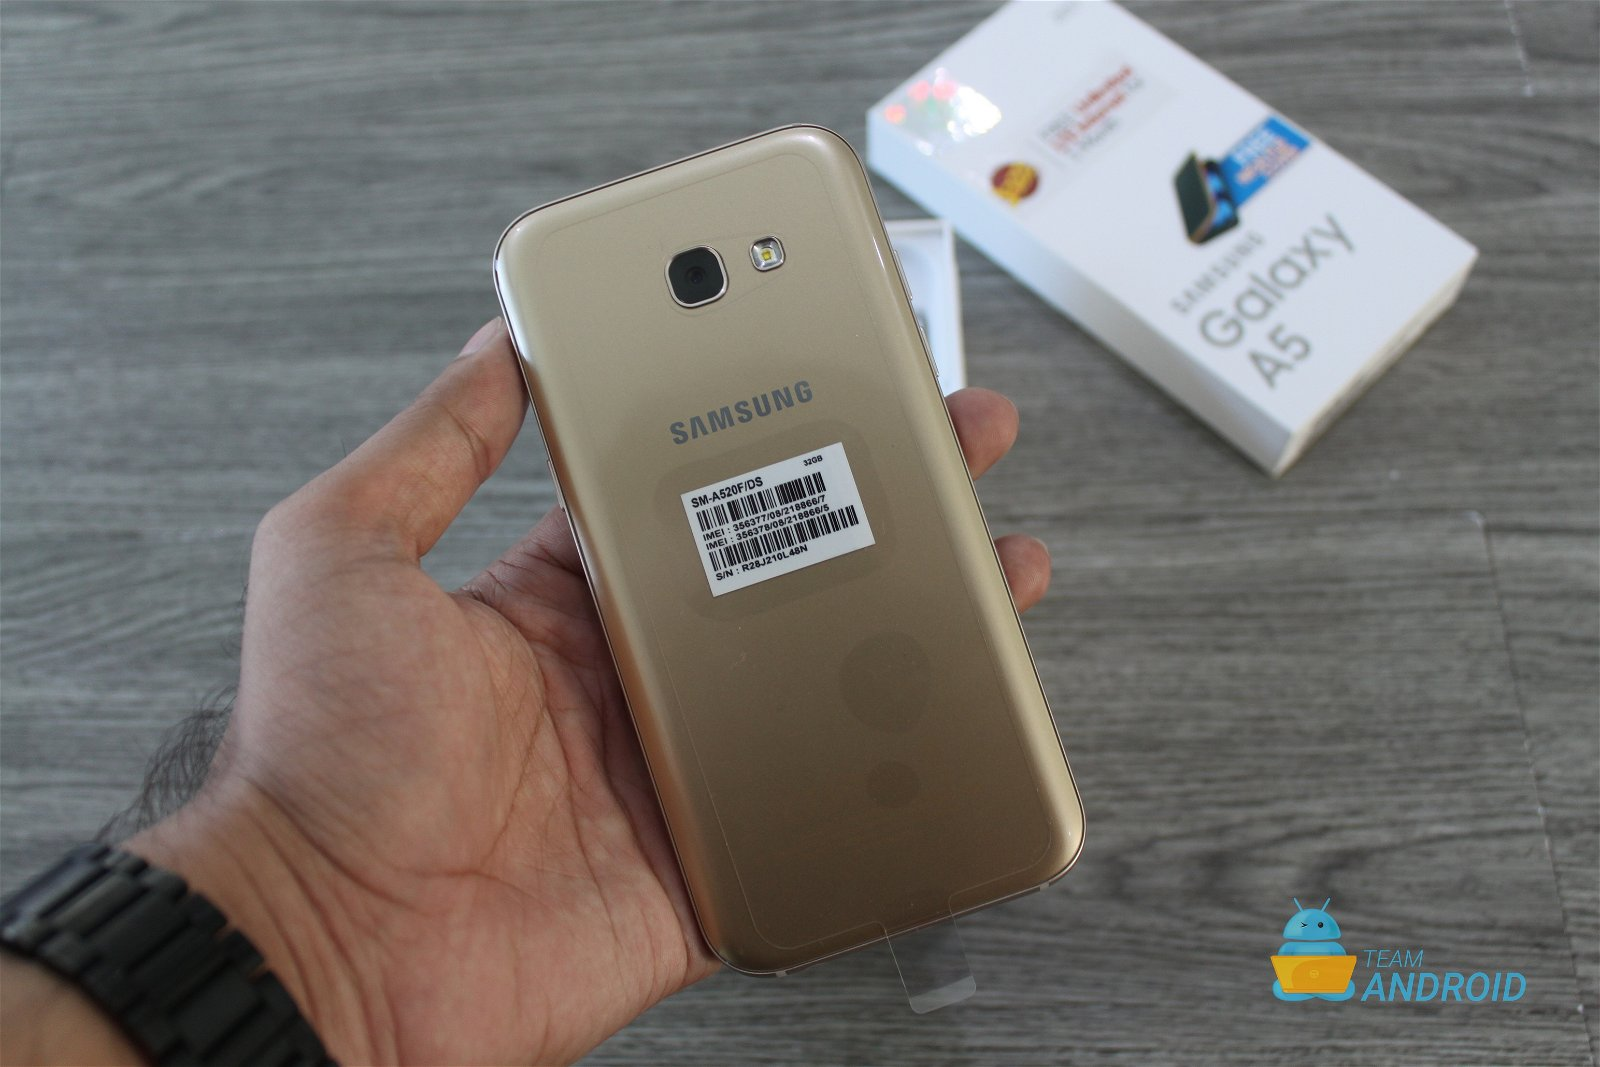 Samsung Galaxy A5 2017: Unboxing and First Impressions